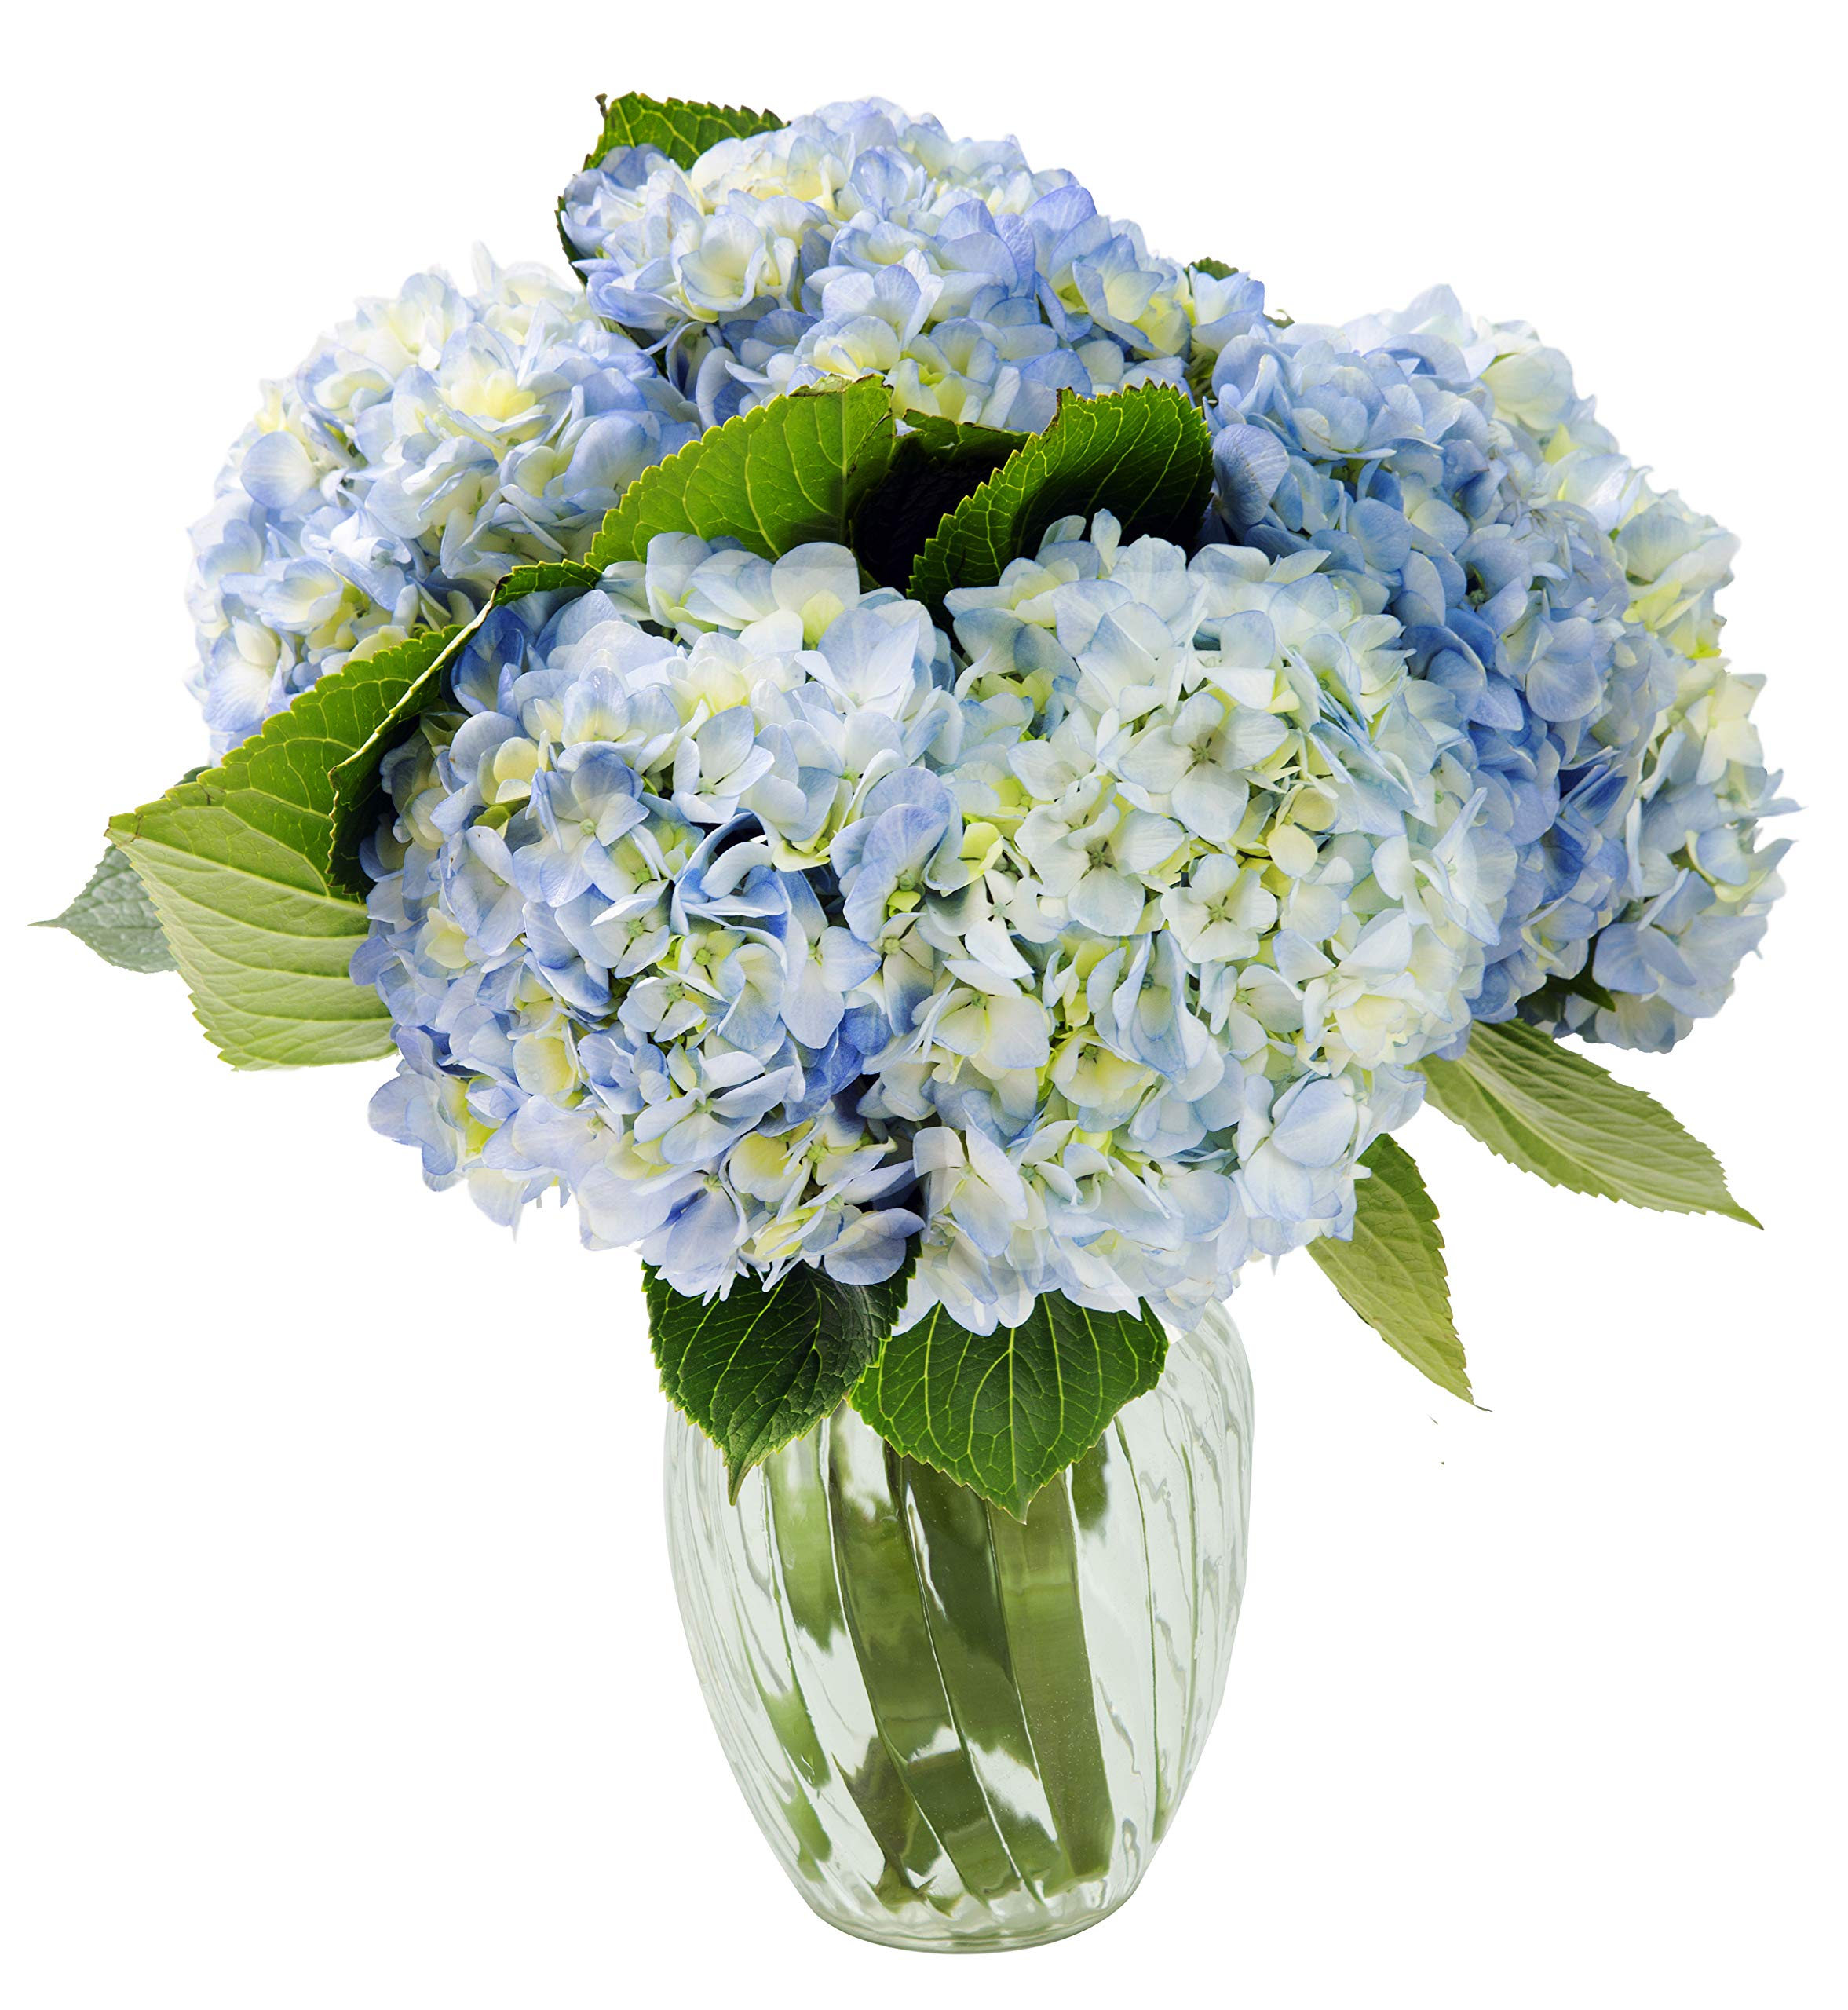 KaBloom Summer Beauty Bouquet of 6 Blue Hydrangeas with Vase by KaBloom